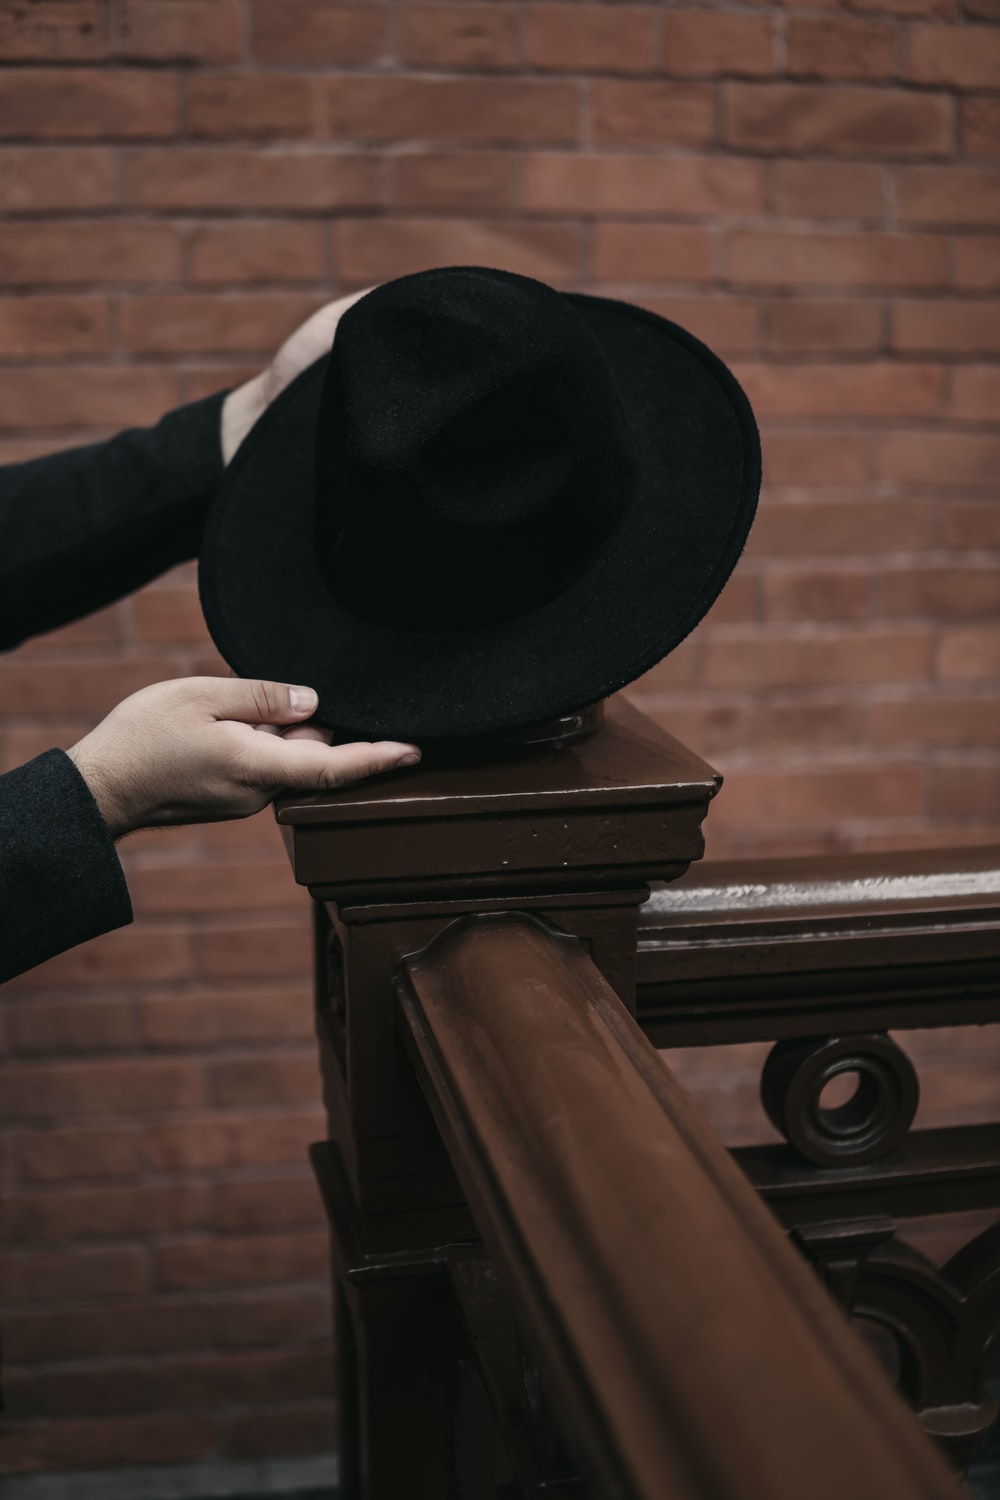 person holding black hat